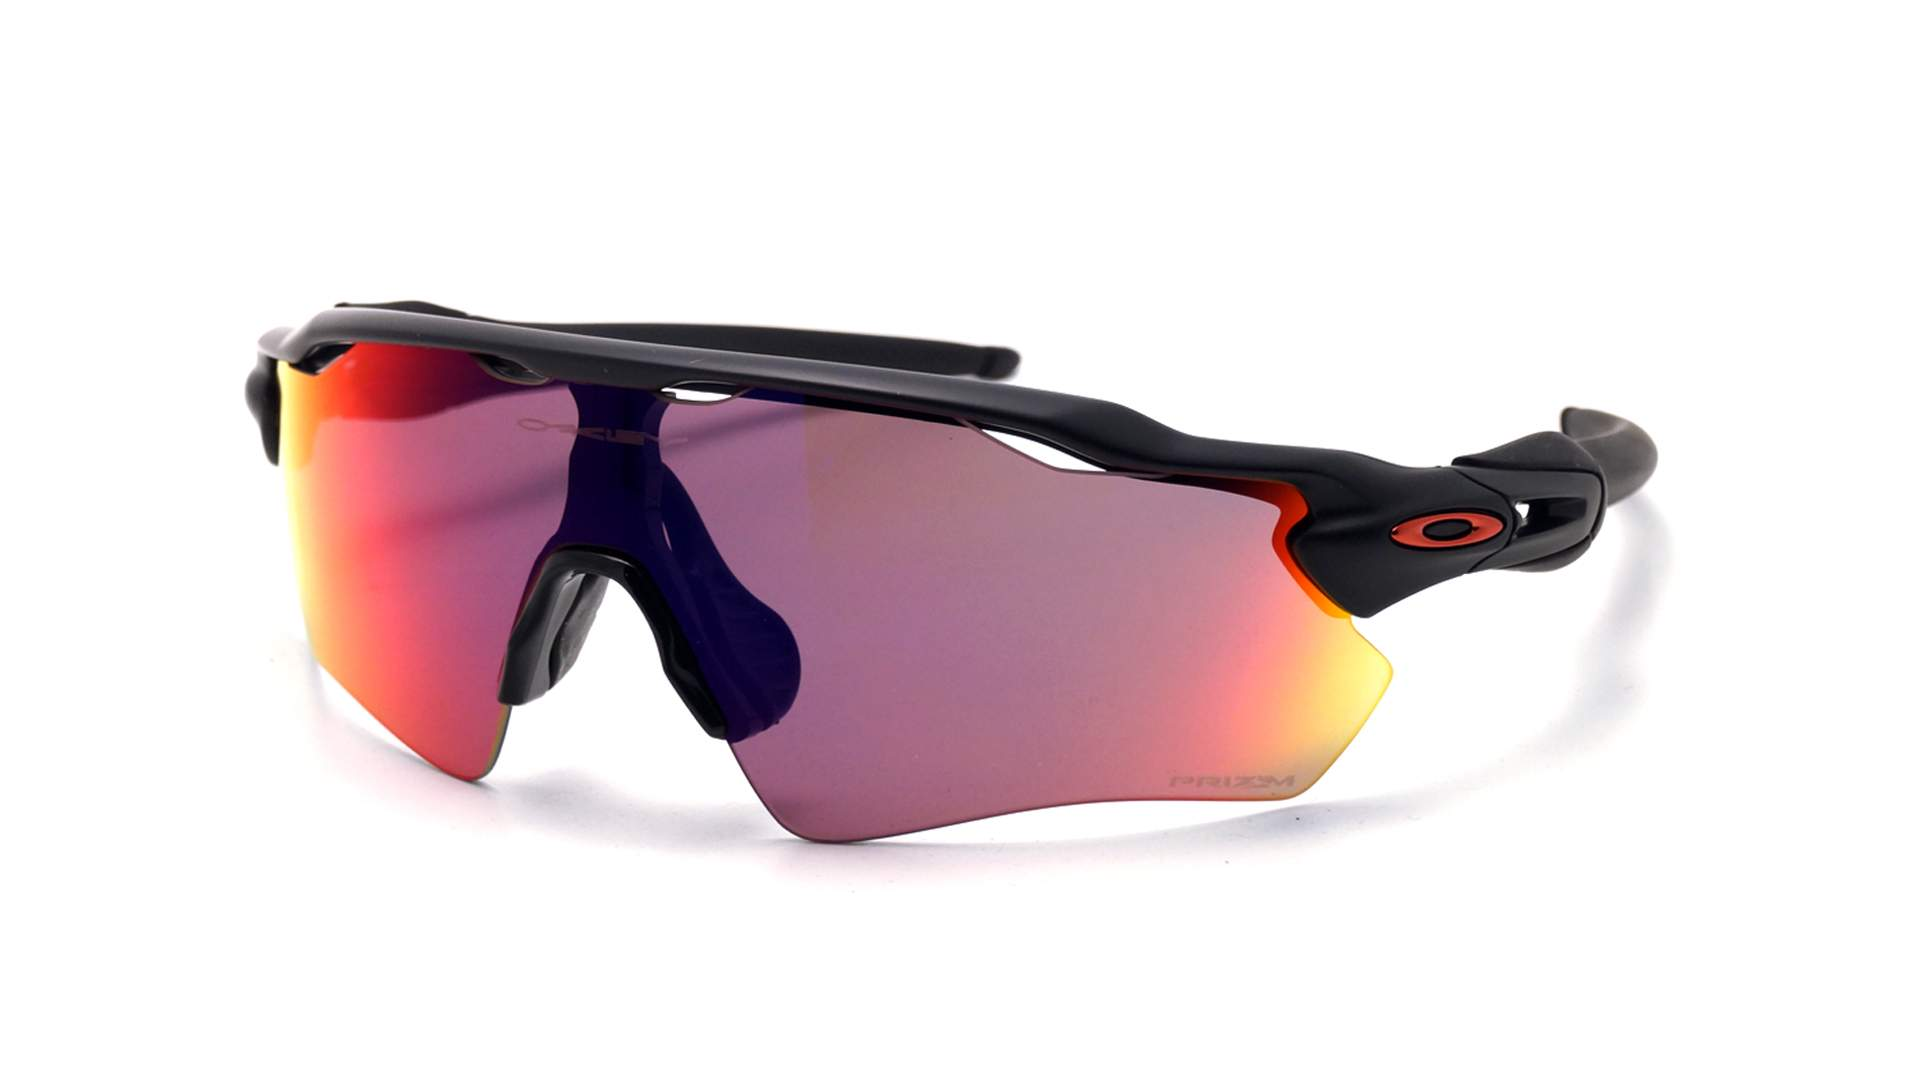 9b5d1e8fc06 ... clearance sunglasses oakley radar ev path black matte prizm road oo9208  4638 55 15 large mirror